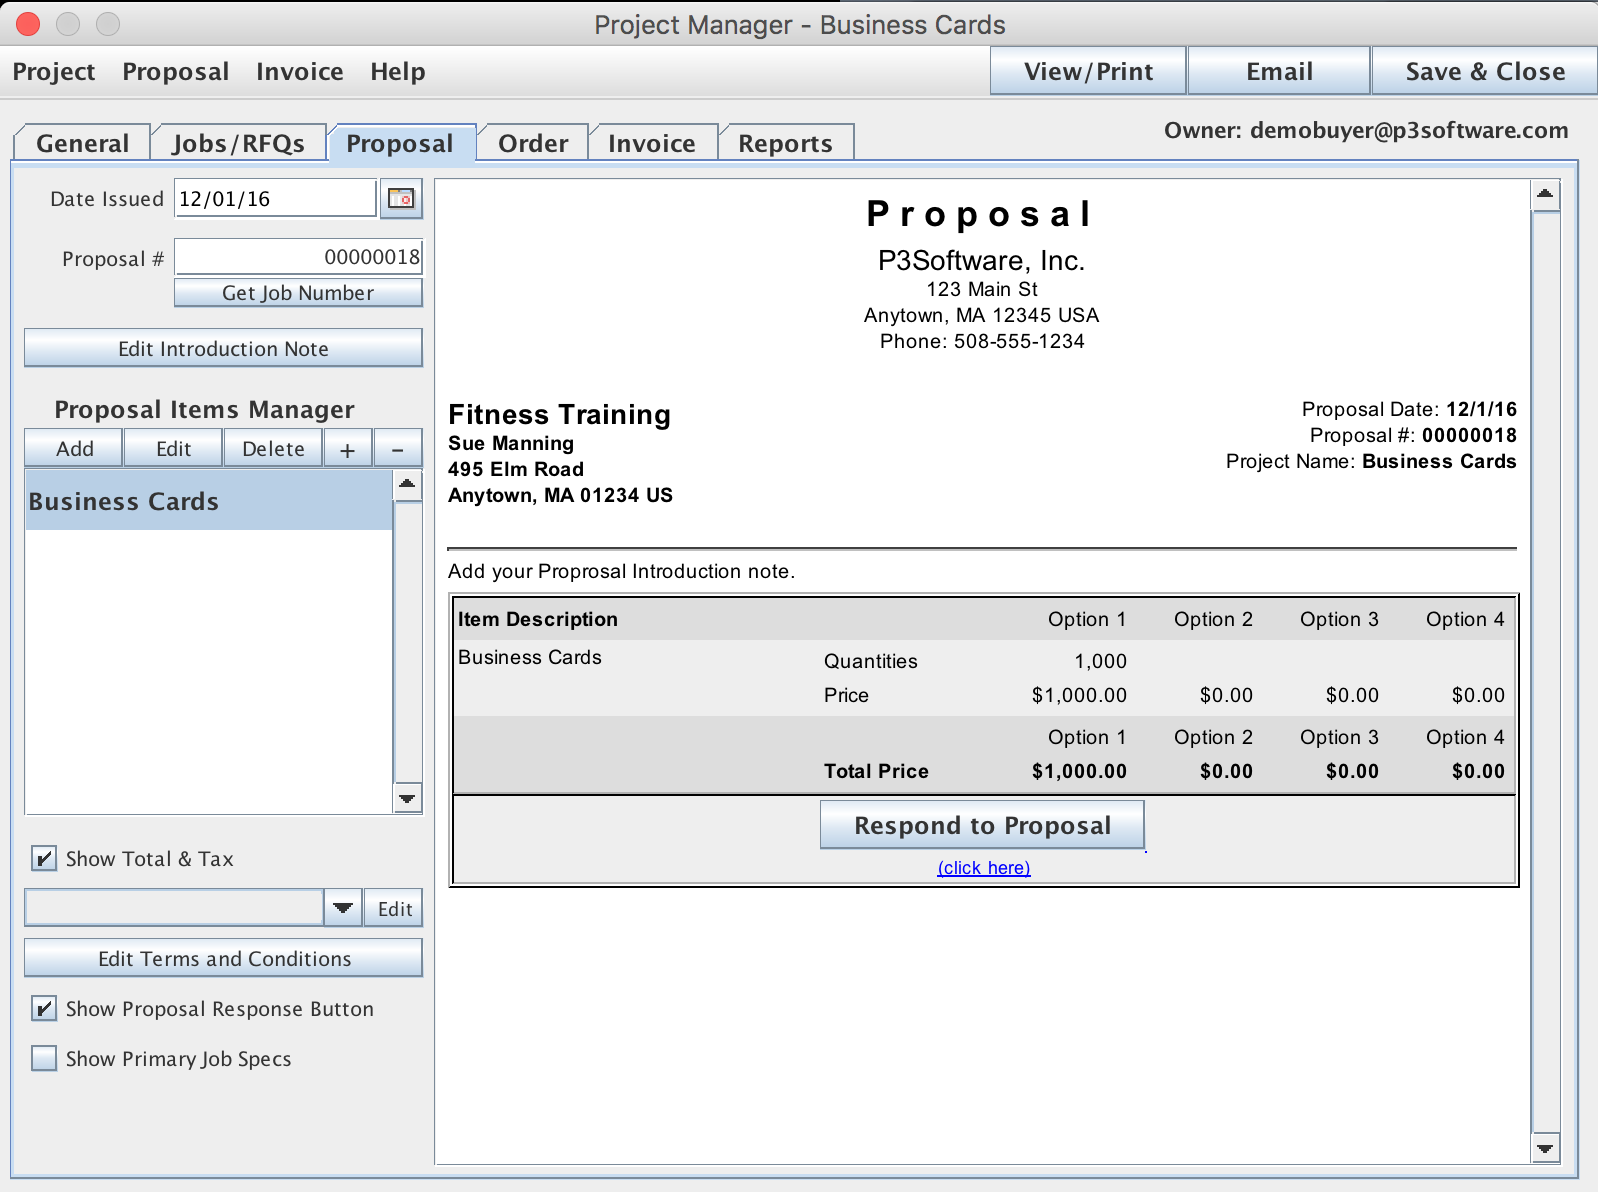 Proposal Tab within the Project Manager